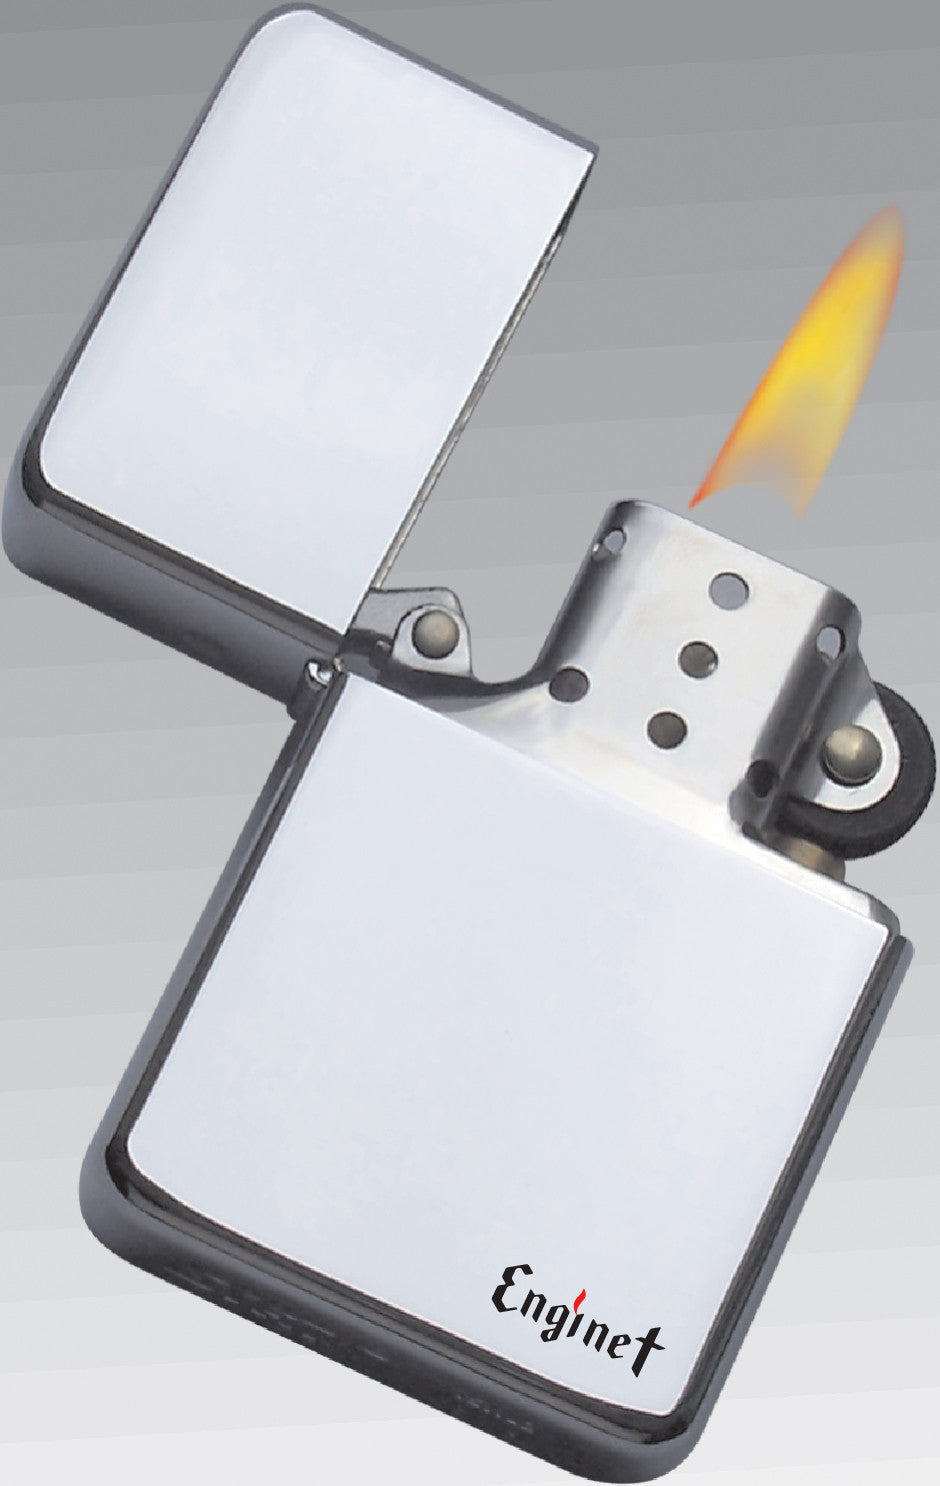 Enginet brand windproof oil lighter 06-60-201